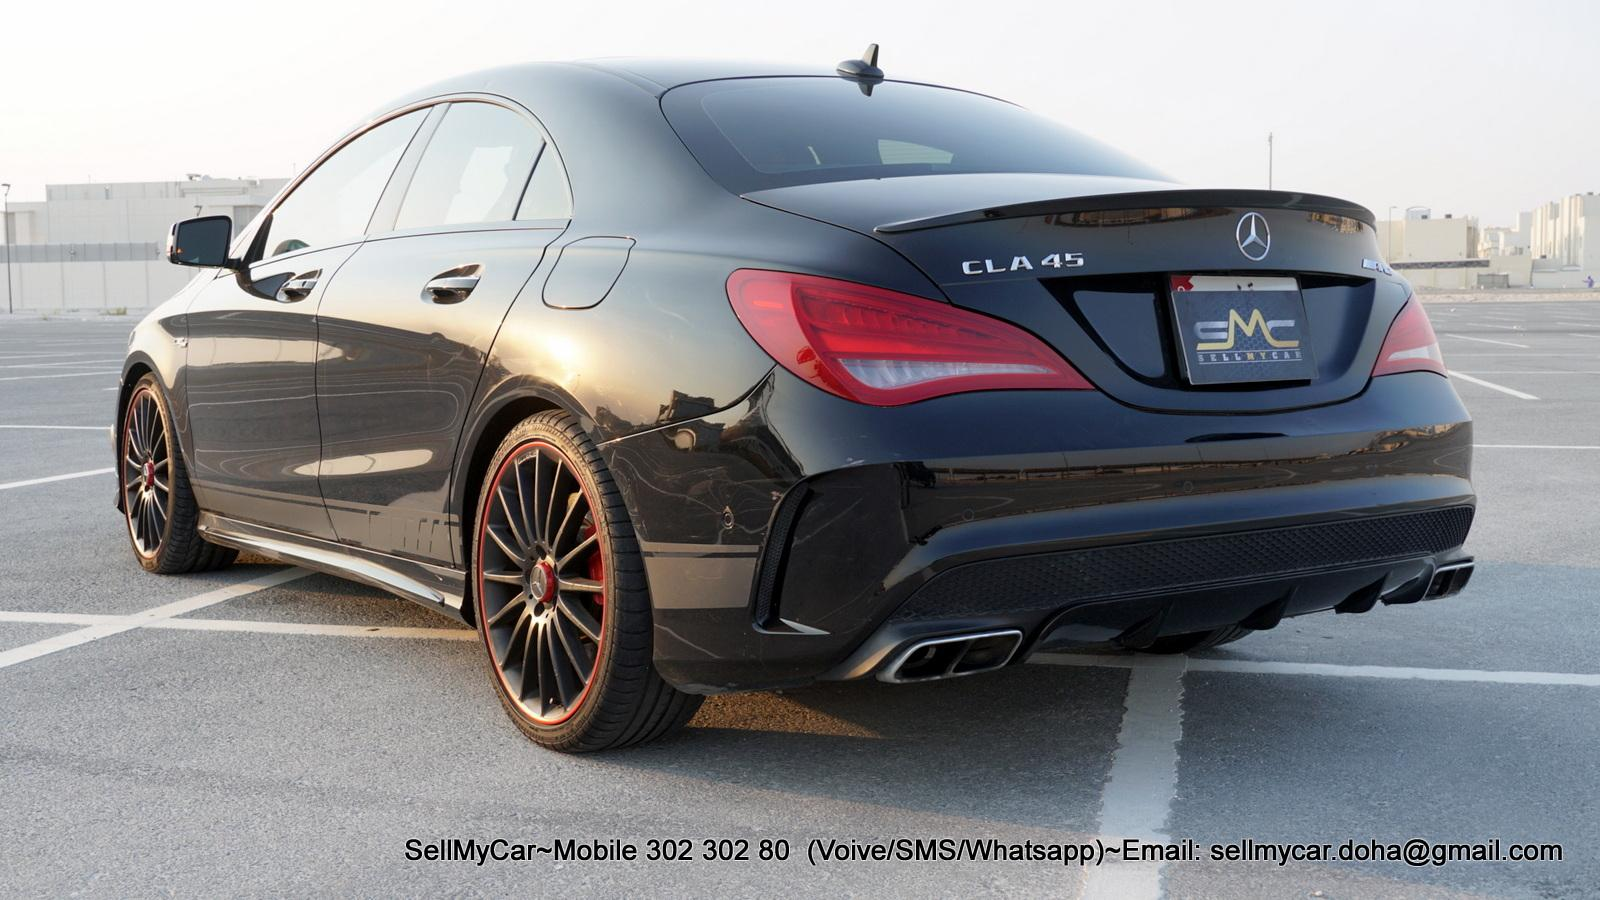 2015 Mercedes Benz CLA 45 AMG Edition 1 (More Phot